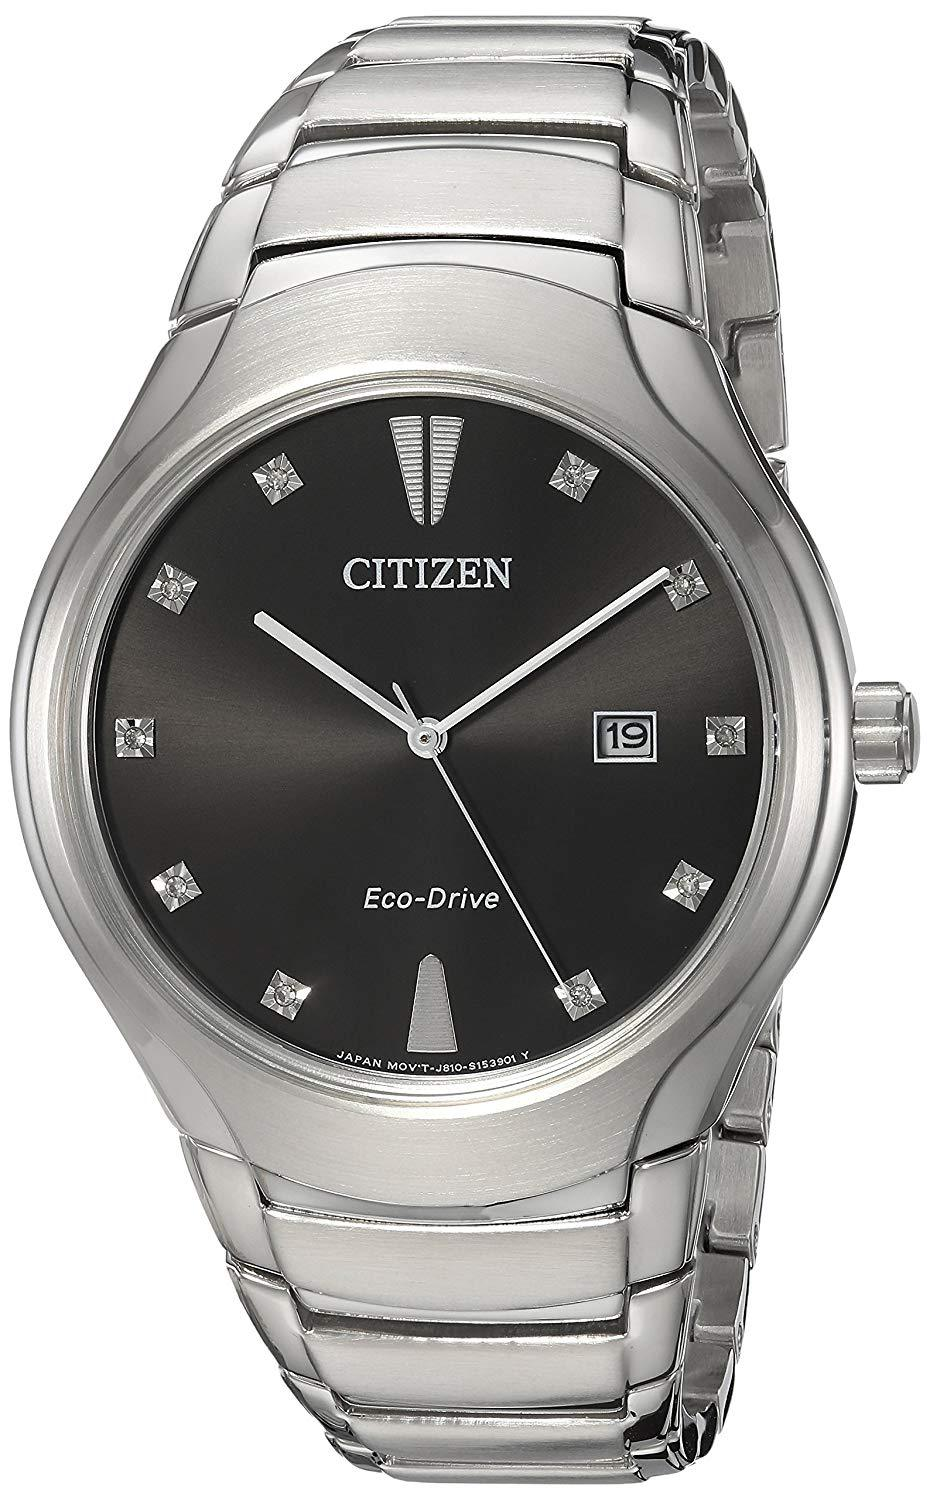 Citizen Men's 'Eco-Drive' Quartz Stainless Steel Casual Watch Silver-Toned AW155